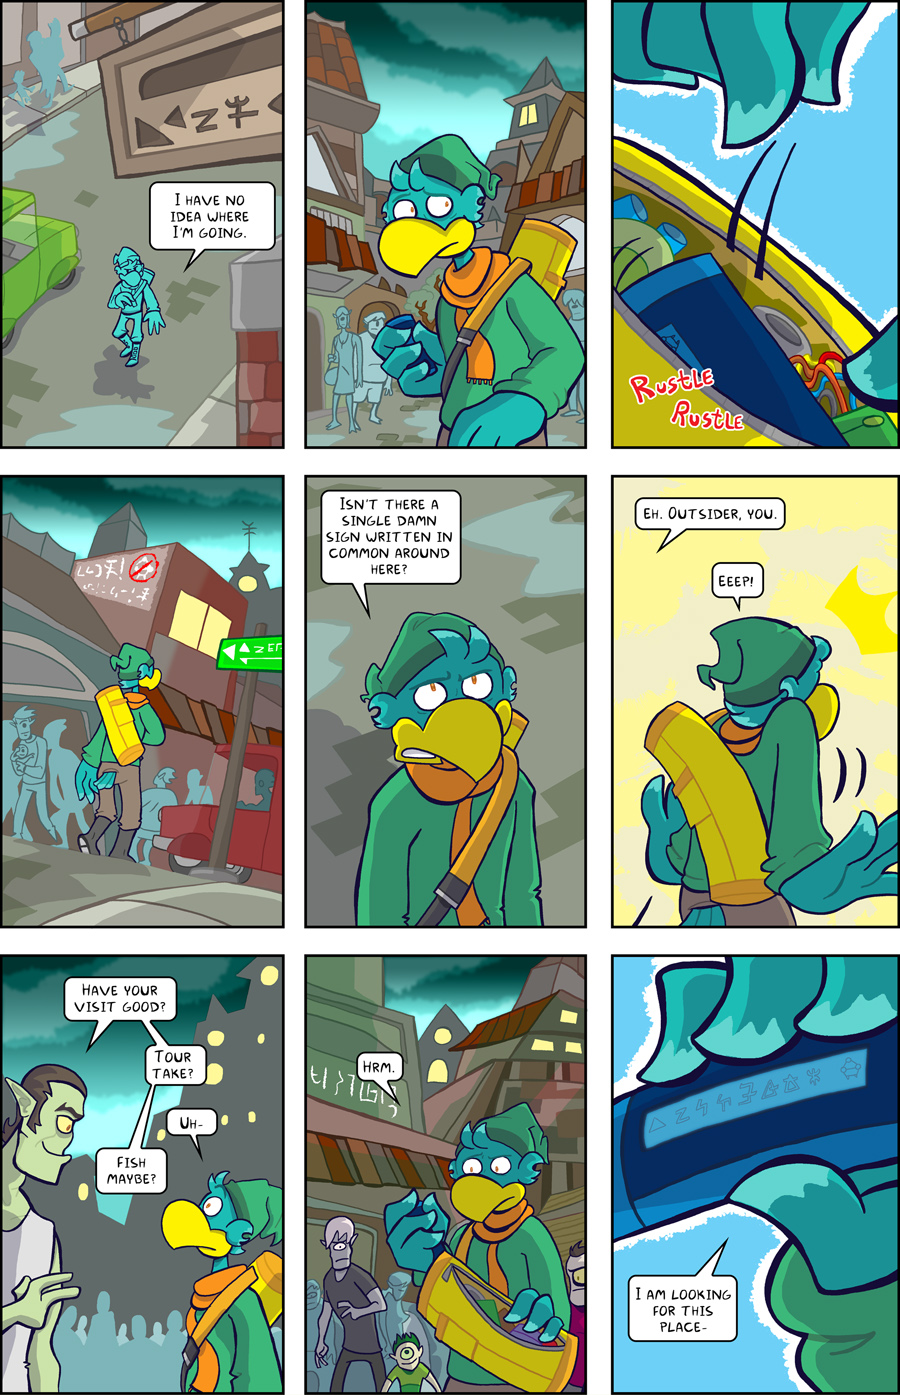 Episode 3: Pg 4